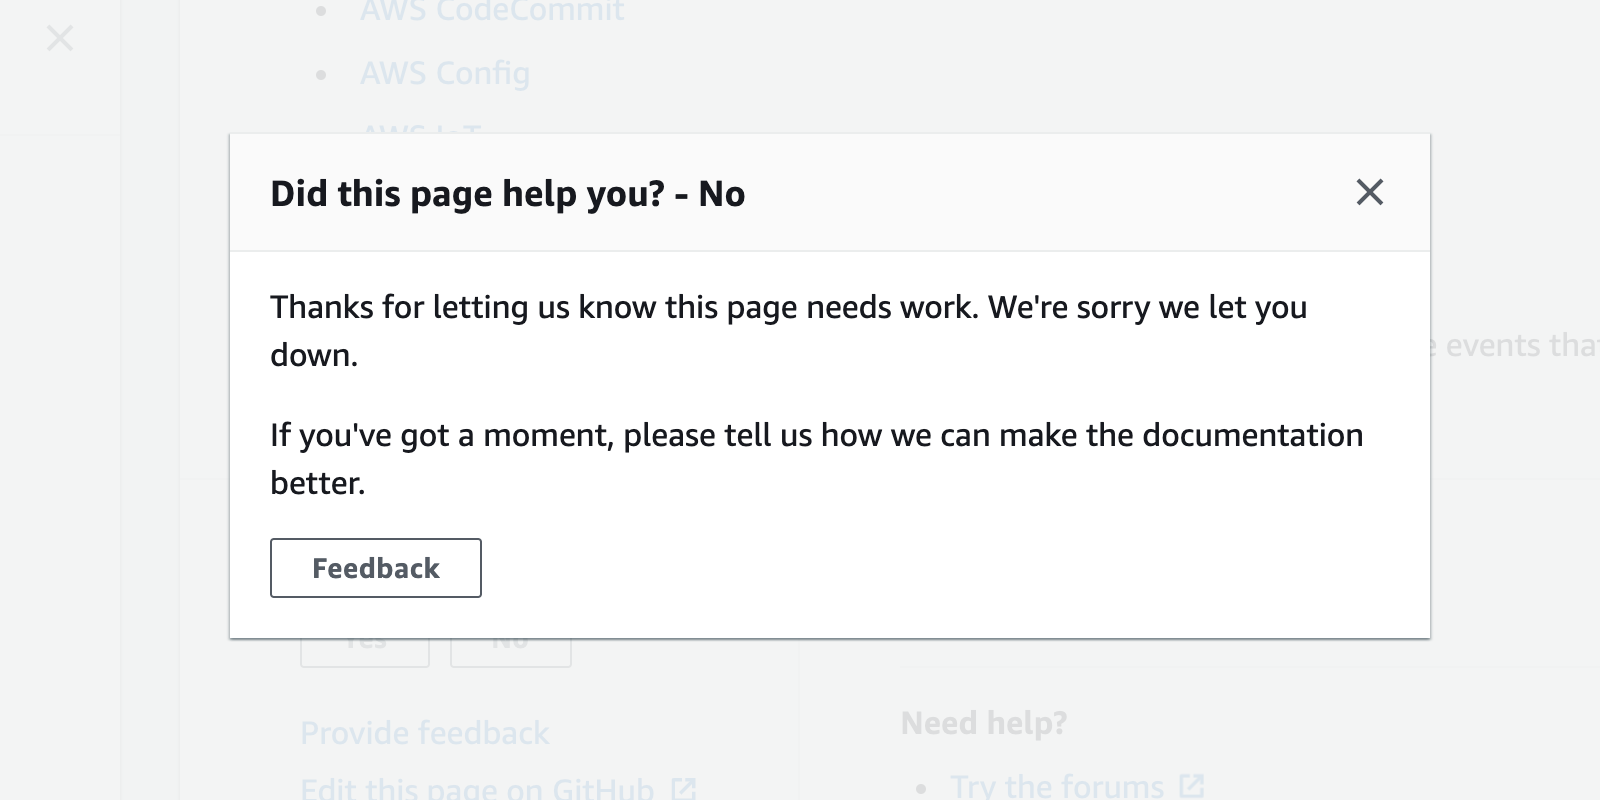 Thanks for letting us know this page needs work. We're sorry we let you down.